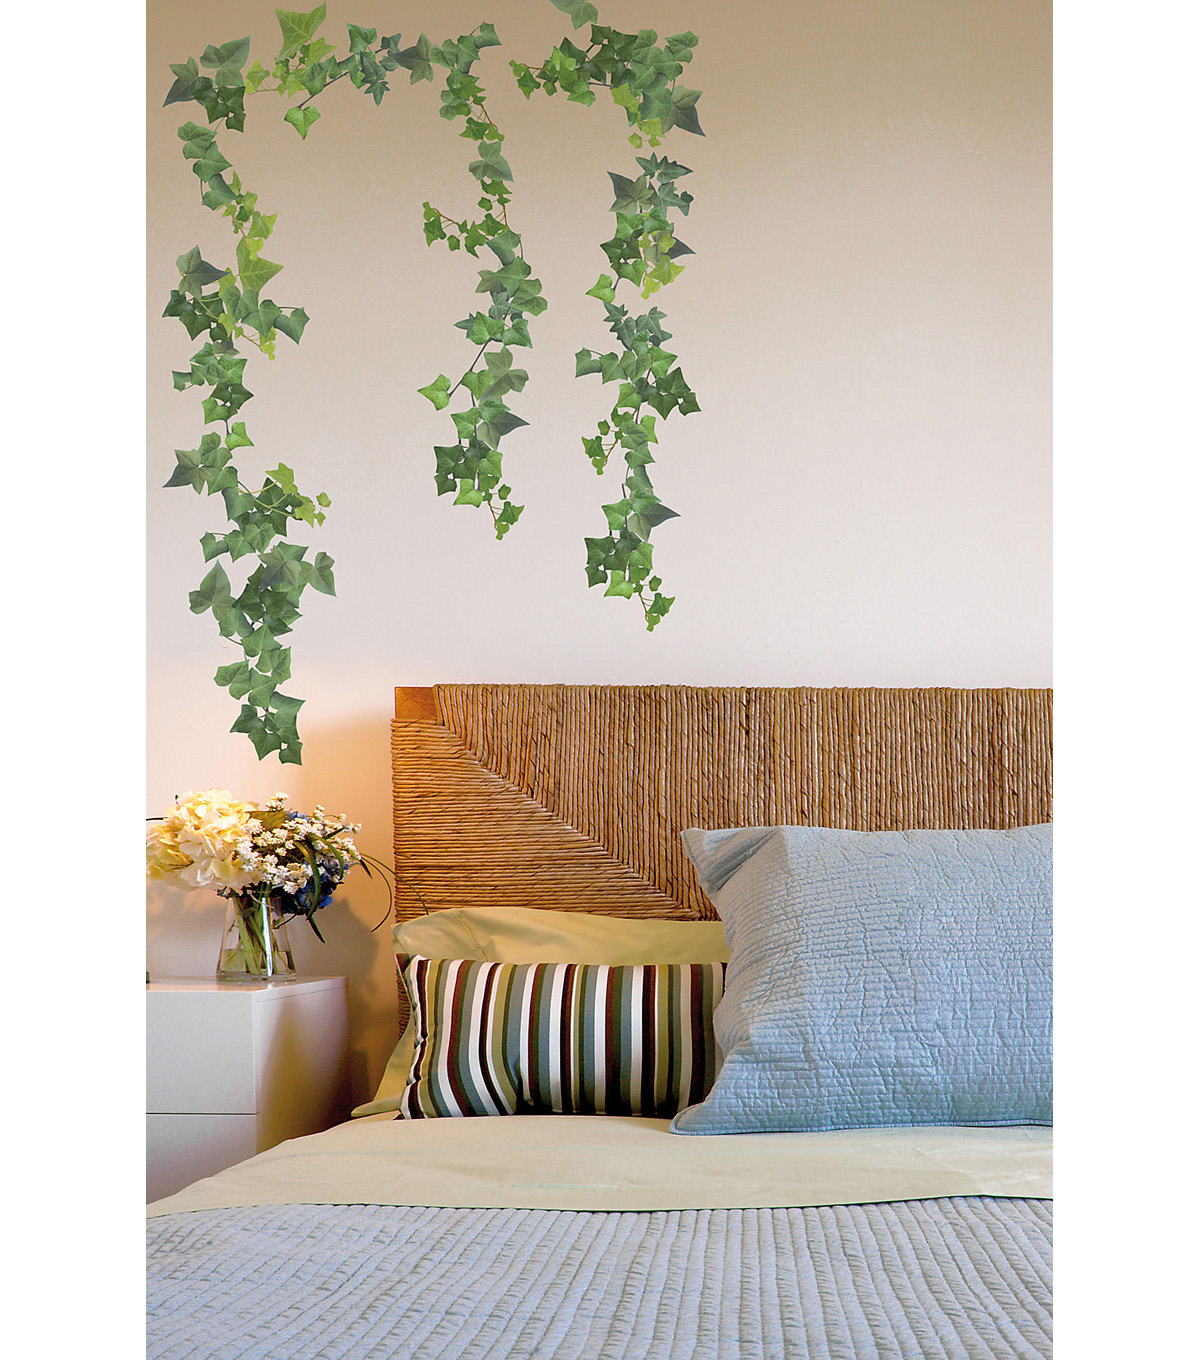 Home Decor Ivy Wall Stickers, 10 Piece Set